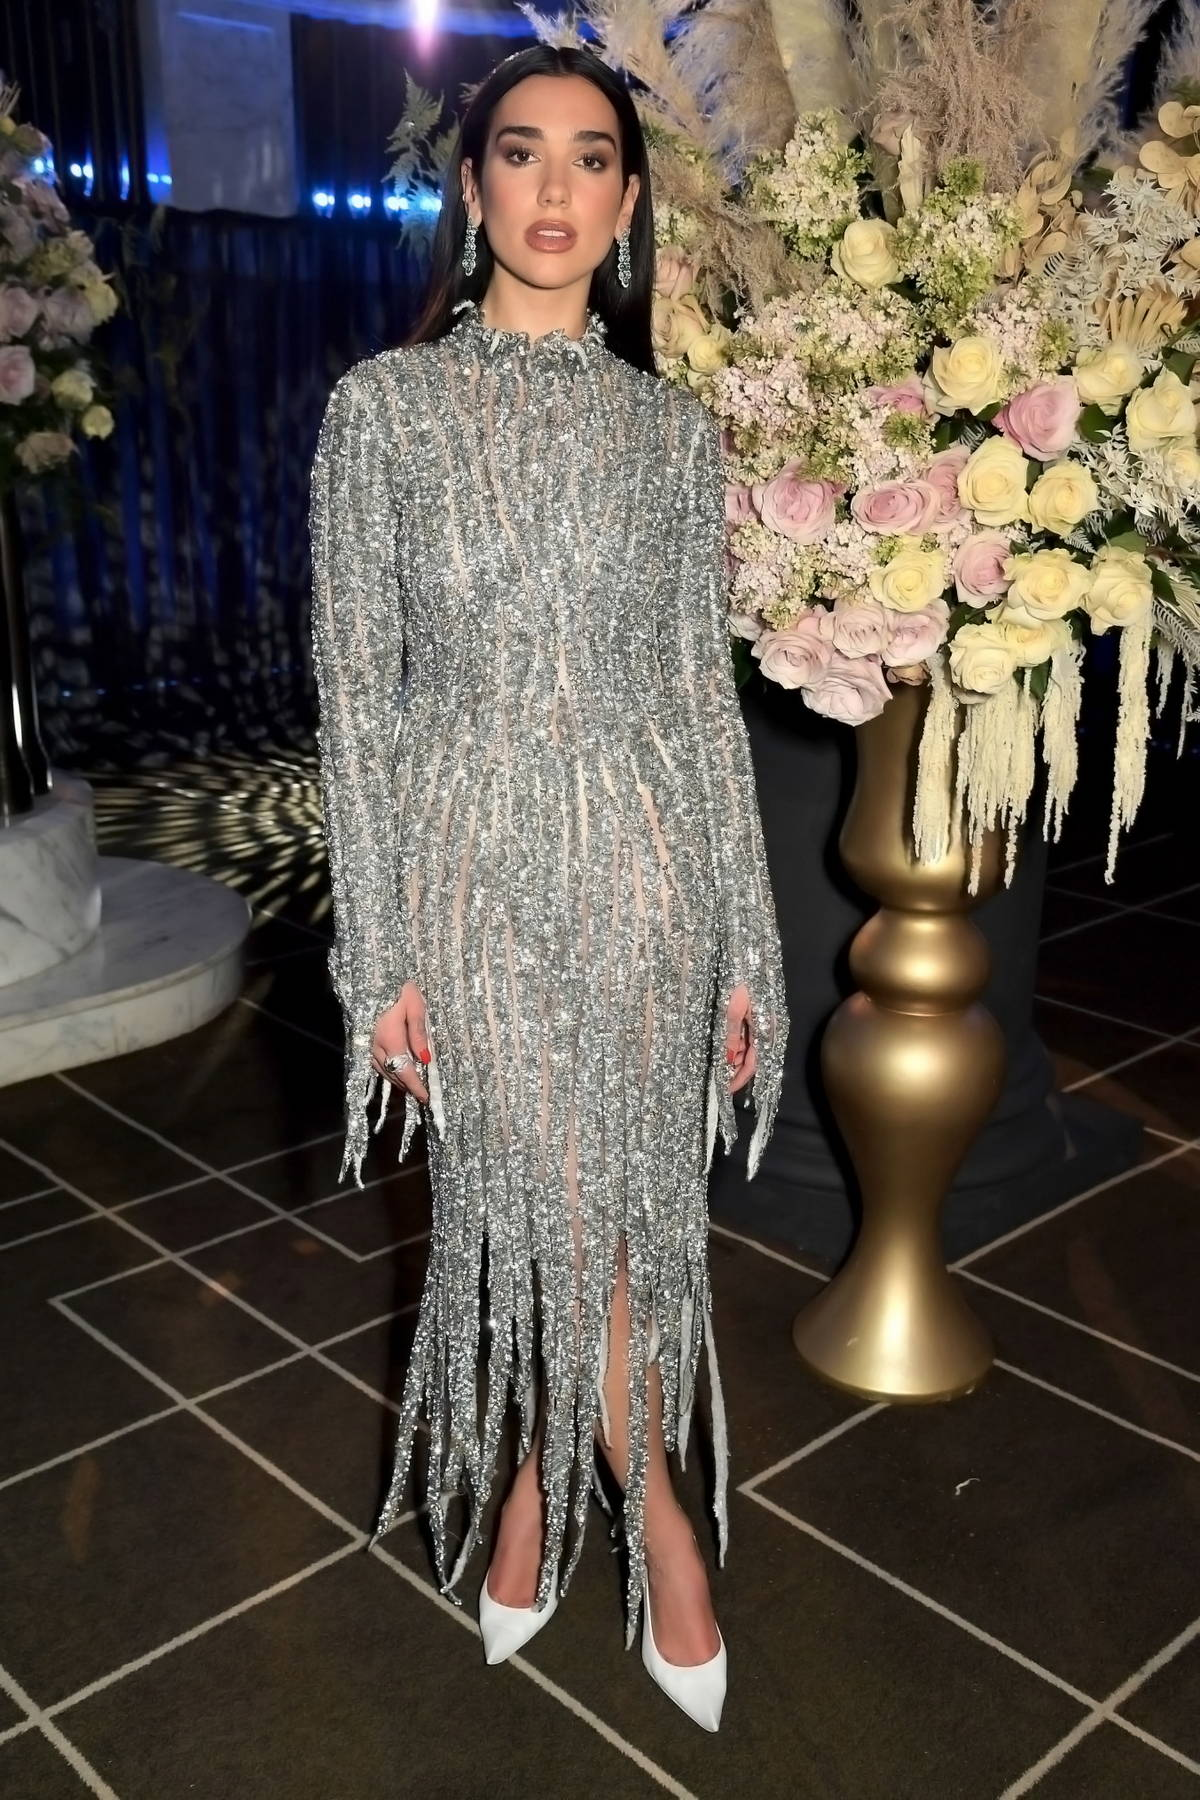 Dua Lipa attends the 29th Annual Elton John AIDS Foundation Academy Awards Viewing Party at Rosewood London in London, UK